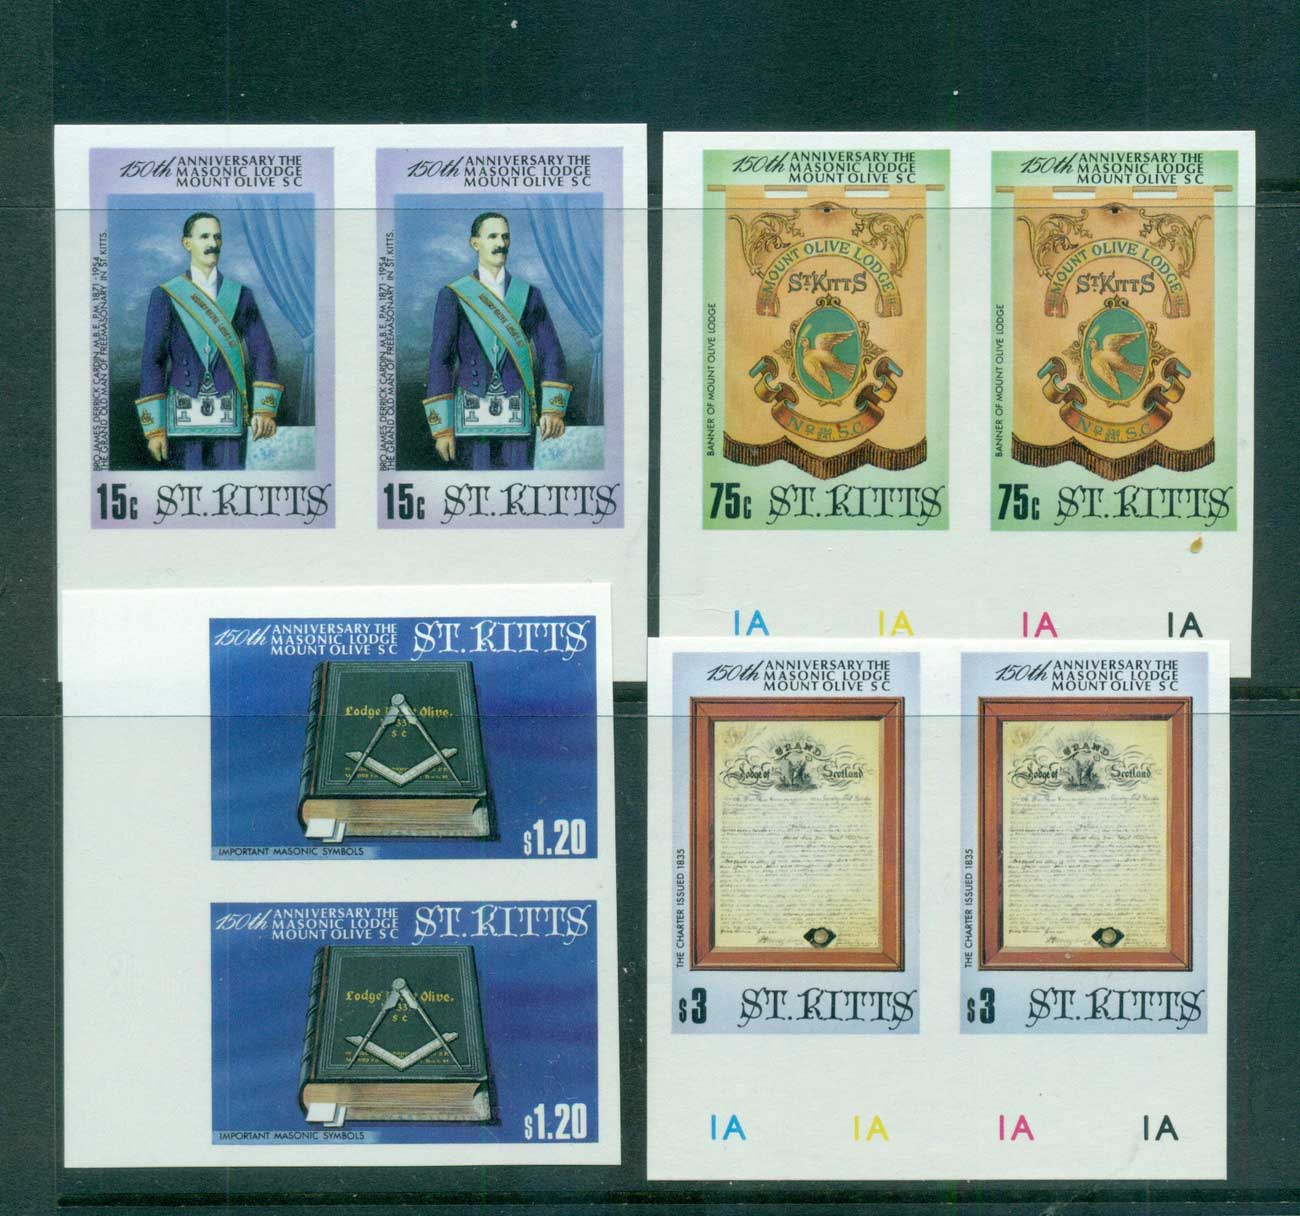 St Kitts 1985 Mt. Olive Masonic Lodge IMPERF pair MUH lot68466